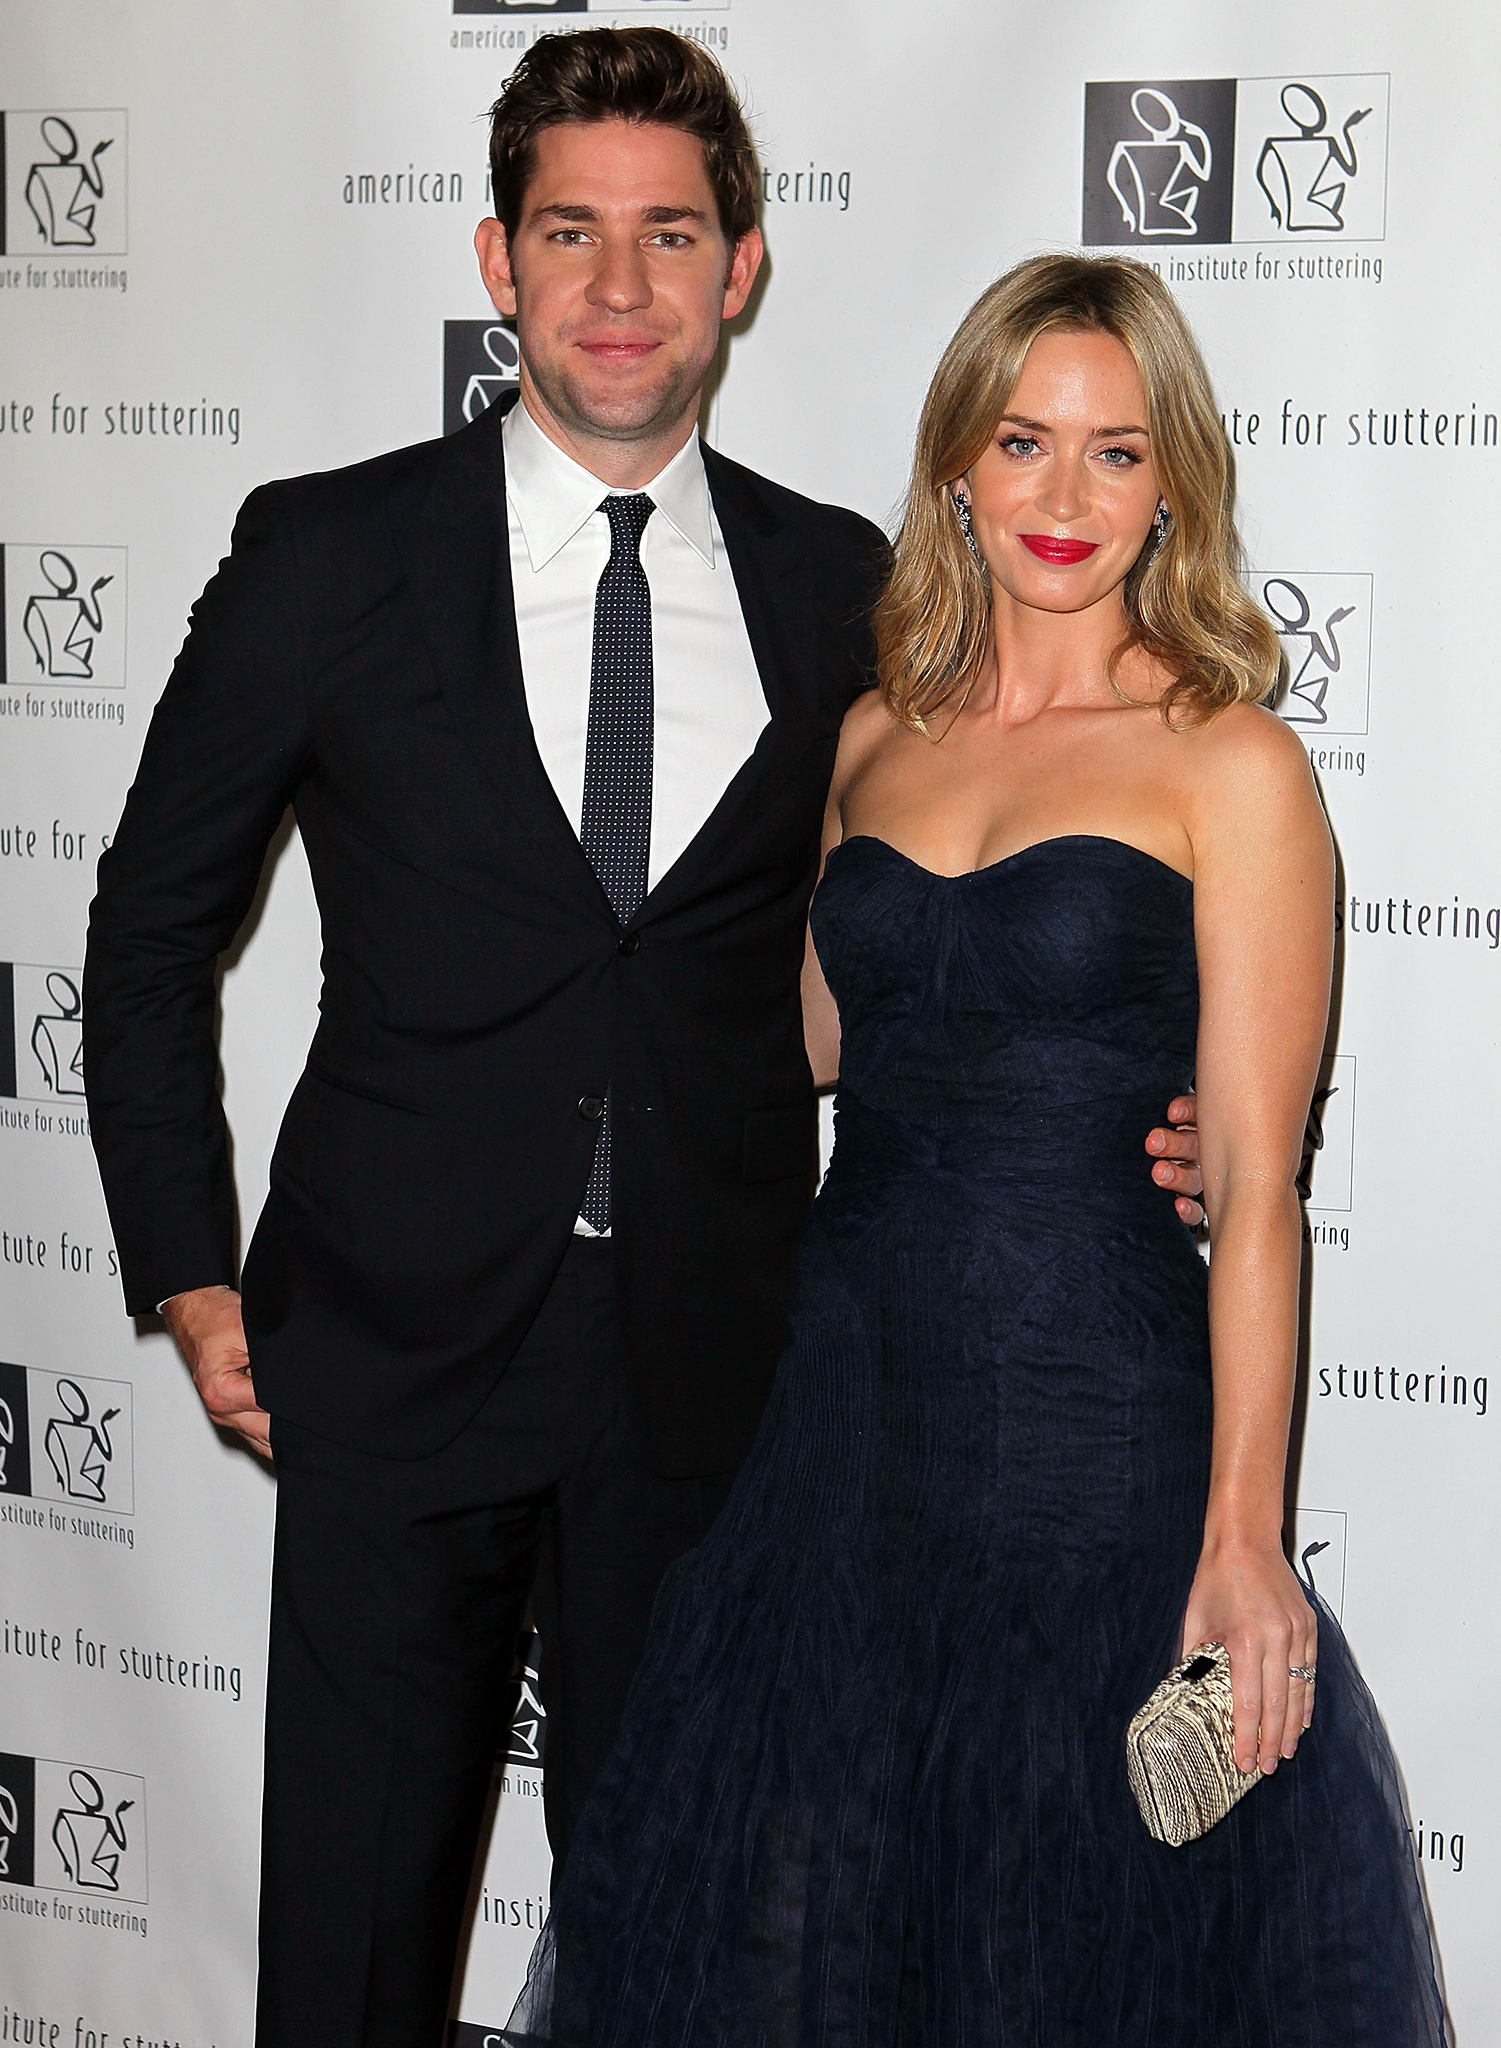 John Krasinski and Emily Blunt (Getty Images)